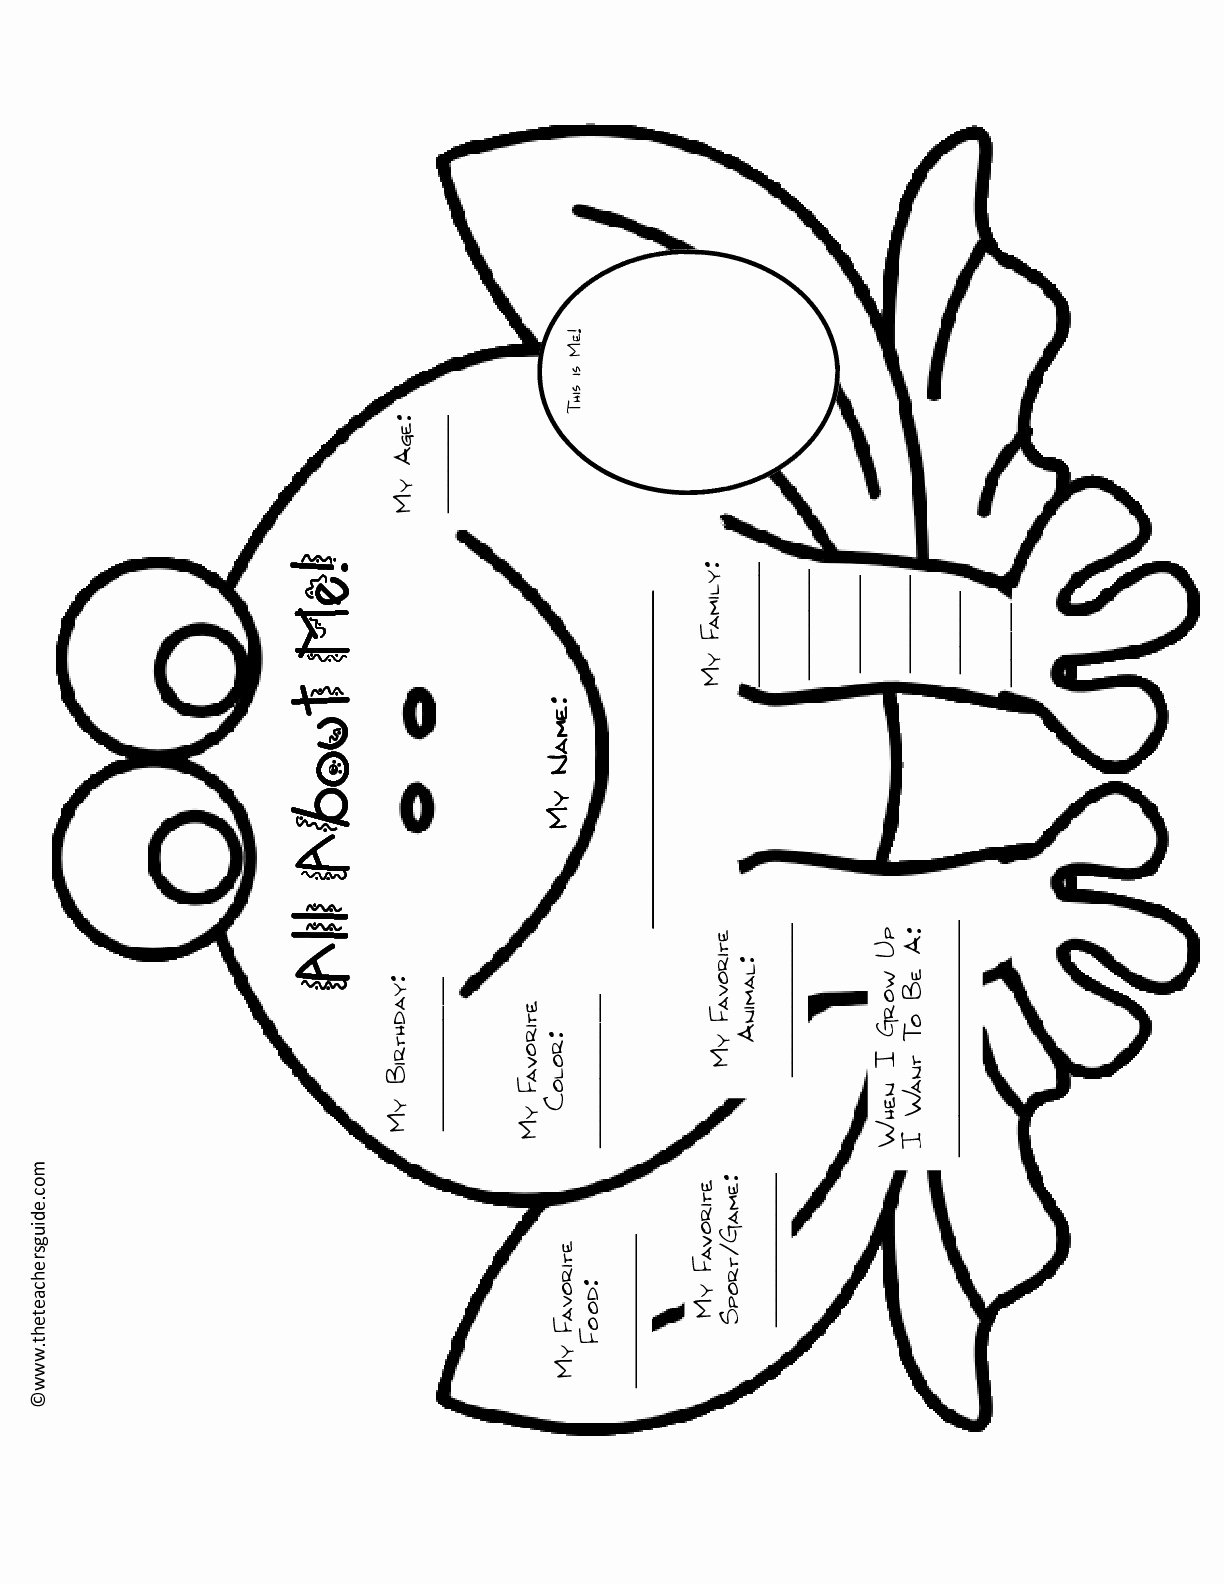 All About Me Worksheet Awesome All About Me